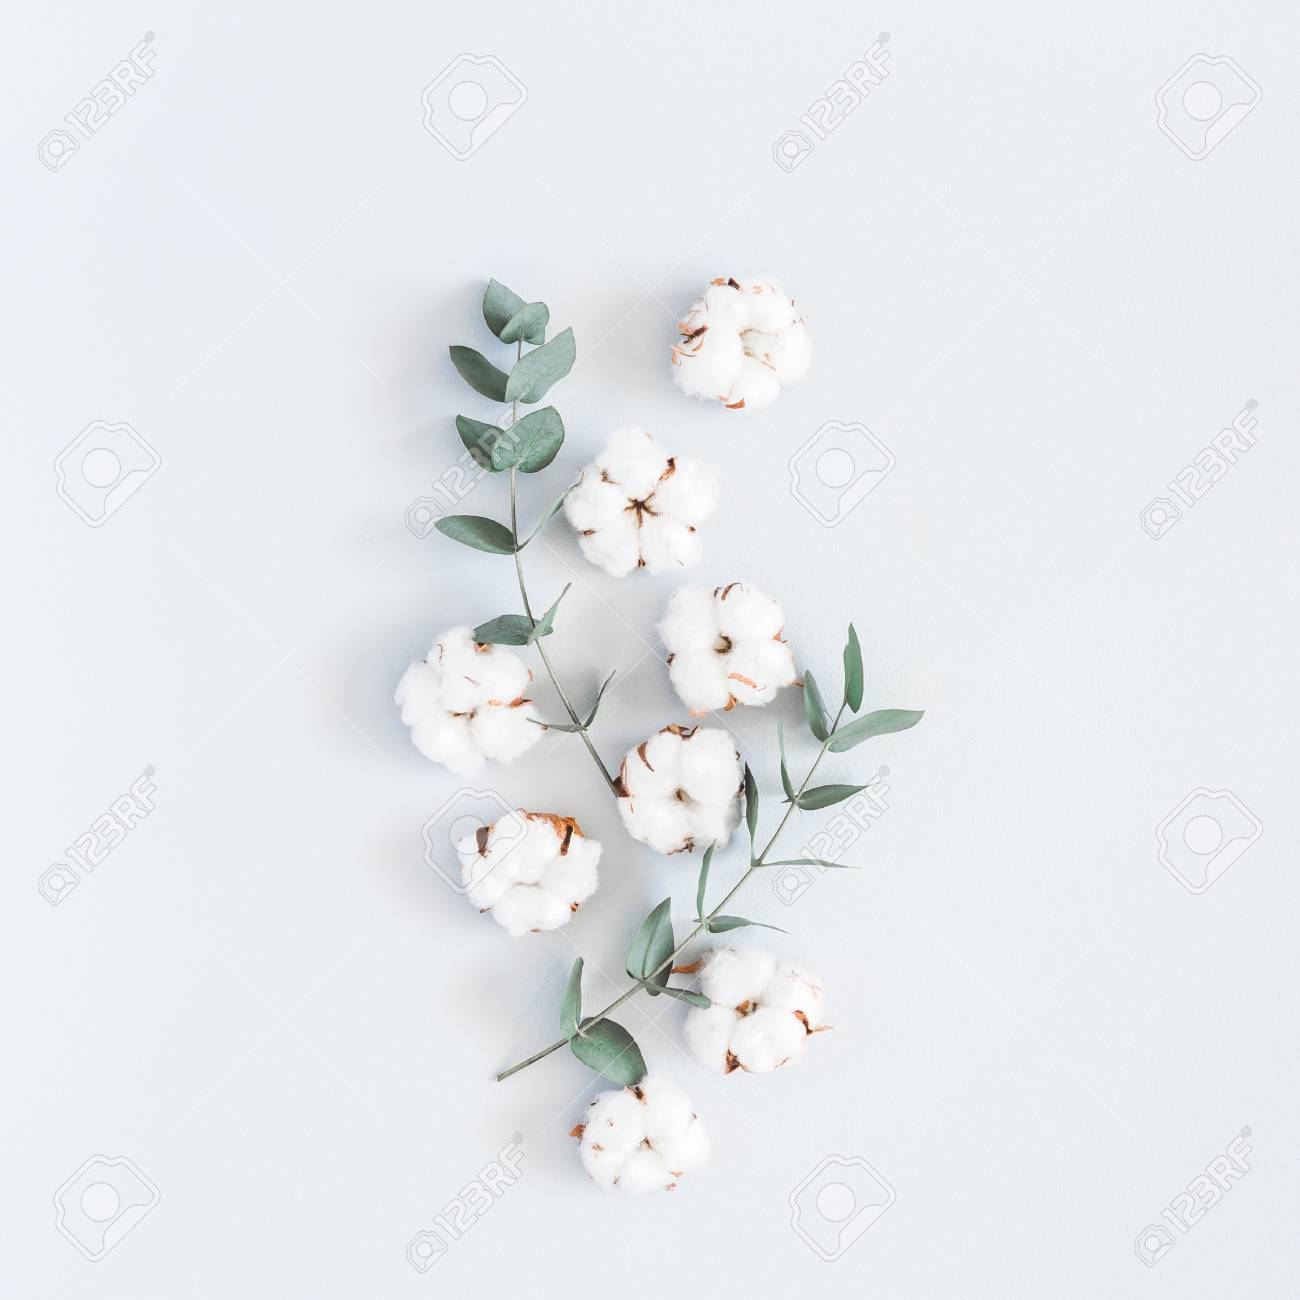 Flowers composition. Pattern made of cotton flowers and eucalyptus branches on pastel blue background. Flat lay, top view, square - 100584530